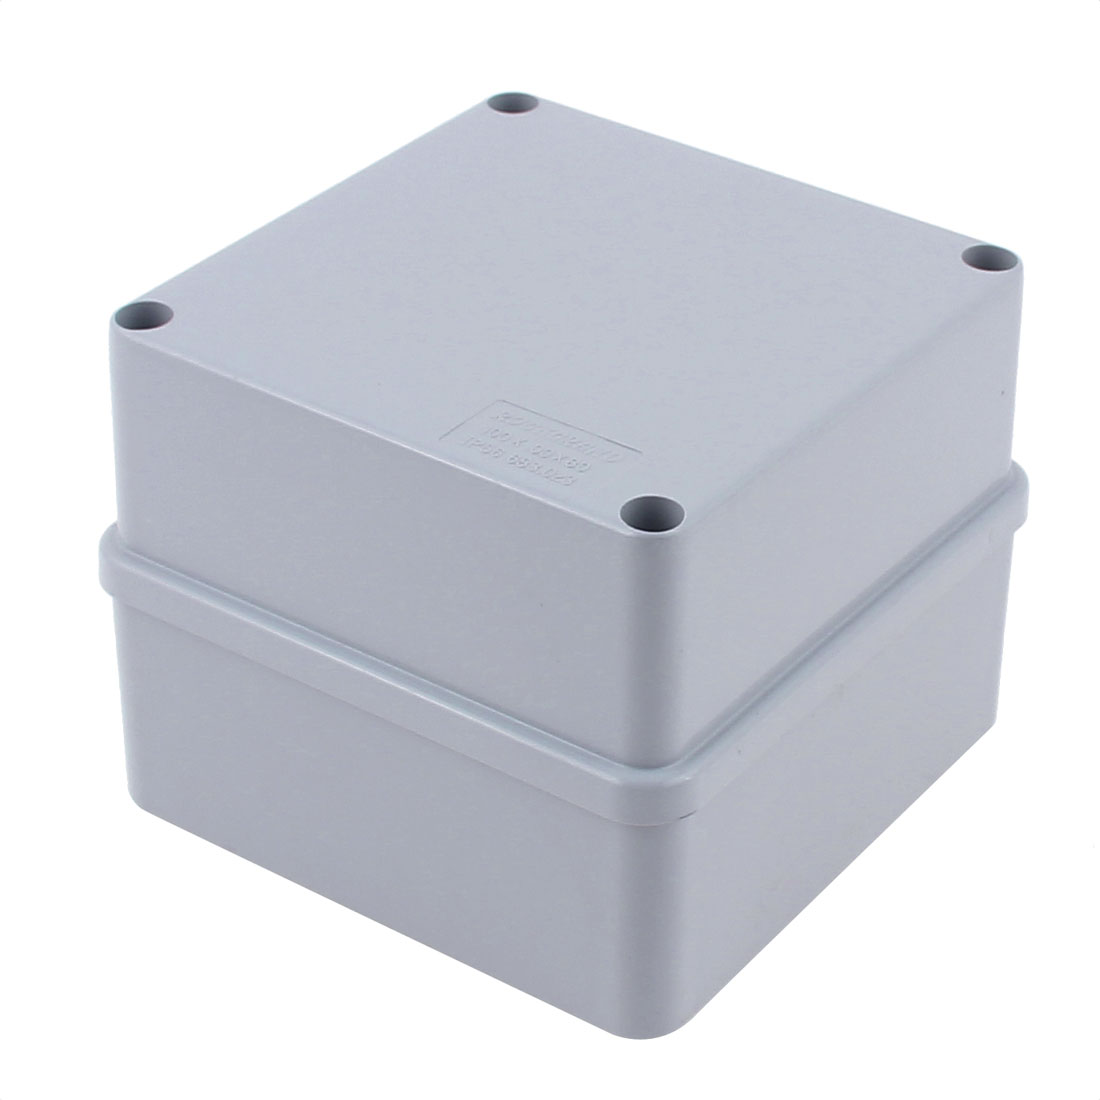 100 x 100 x 80mm Dustproof IP65 Junction Box DIY Terminal Connecting Box Enclosure